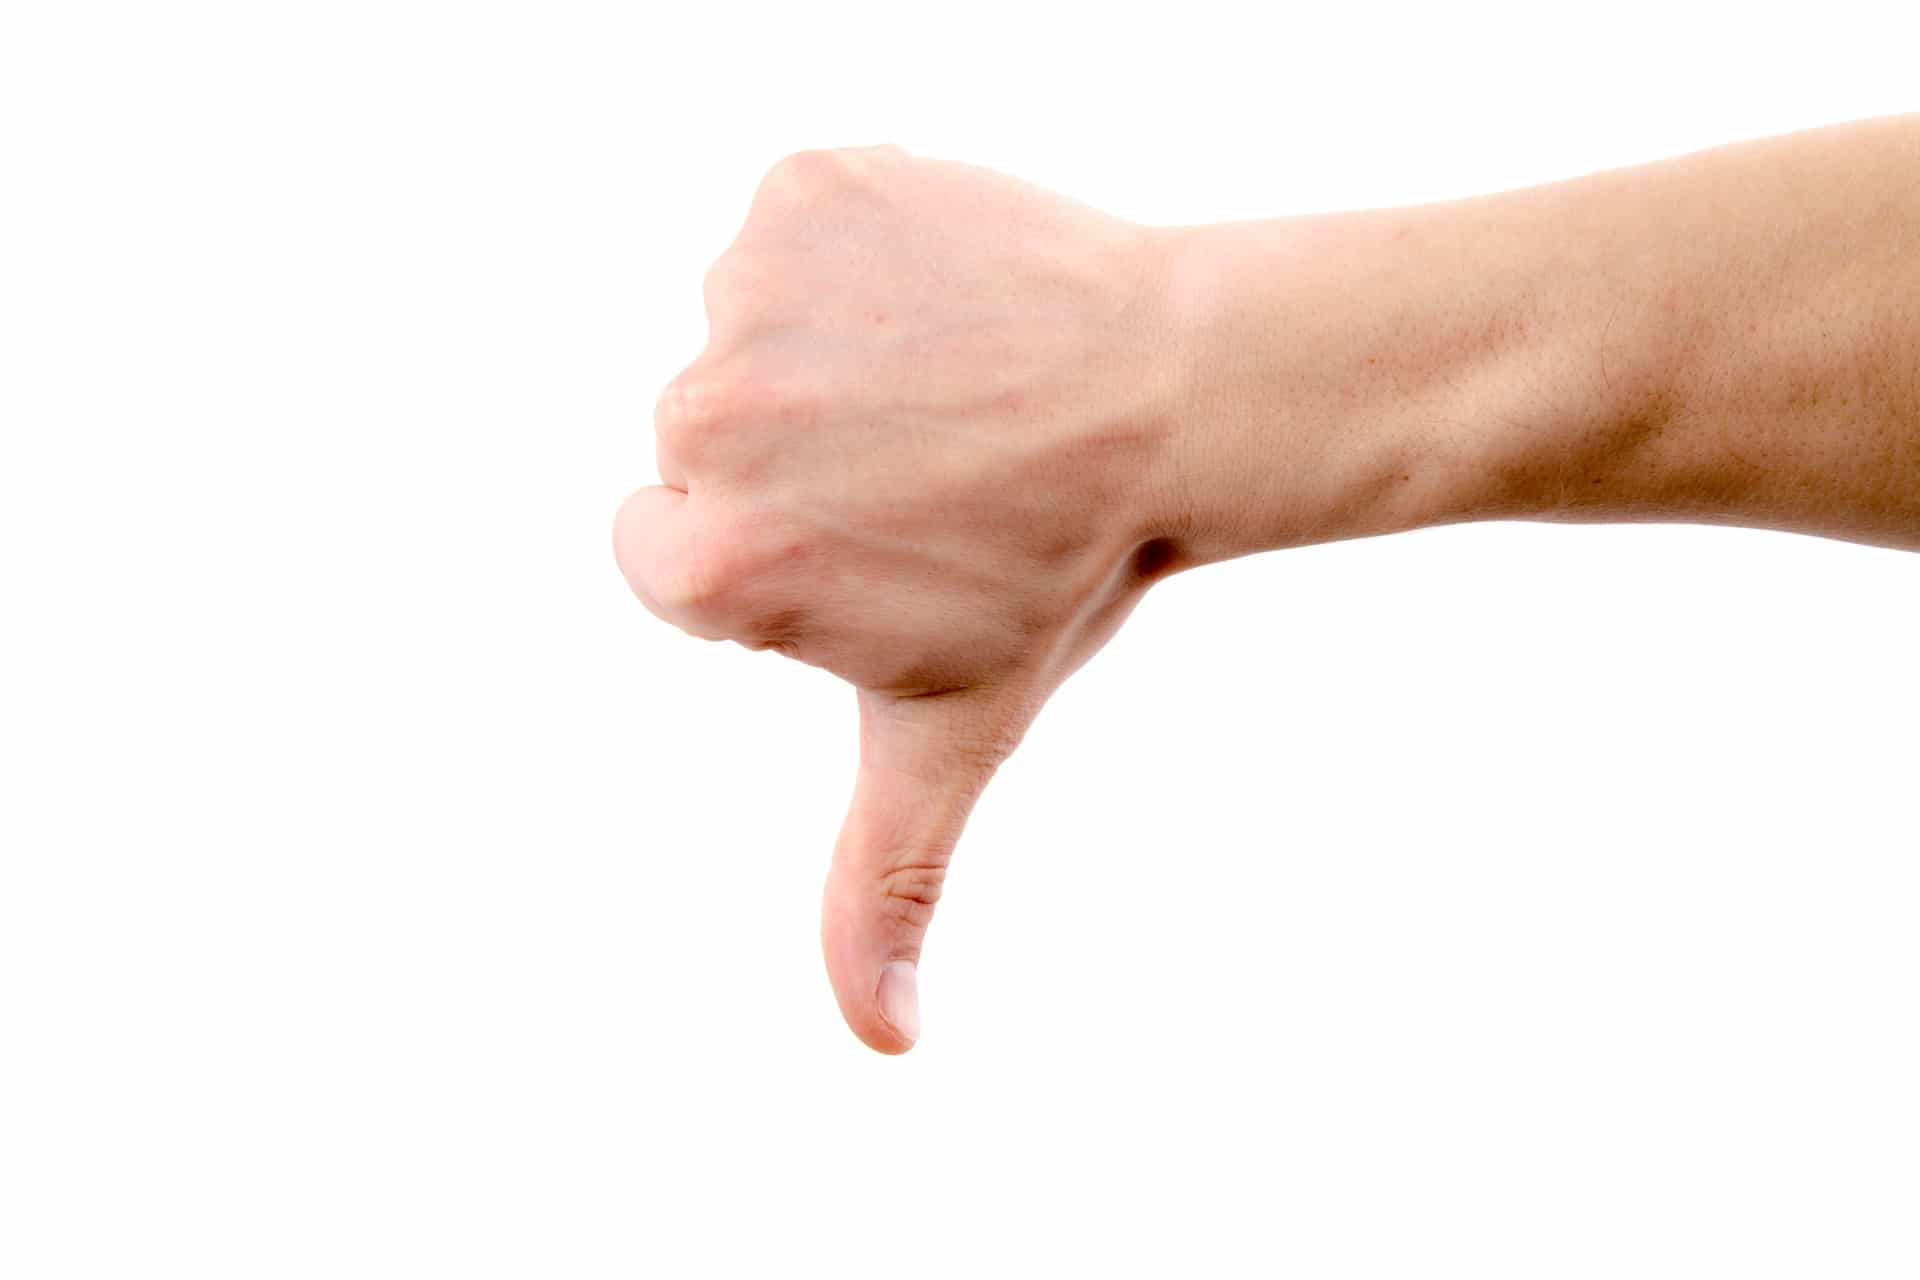 hand-with-thumb-down